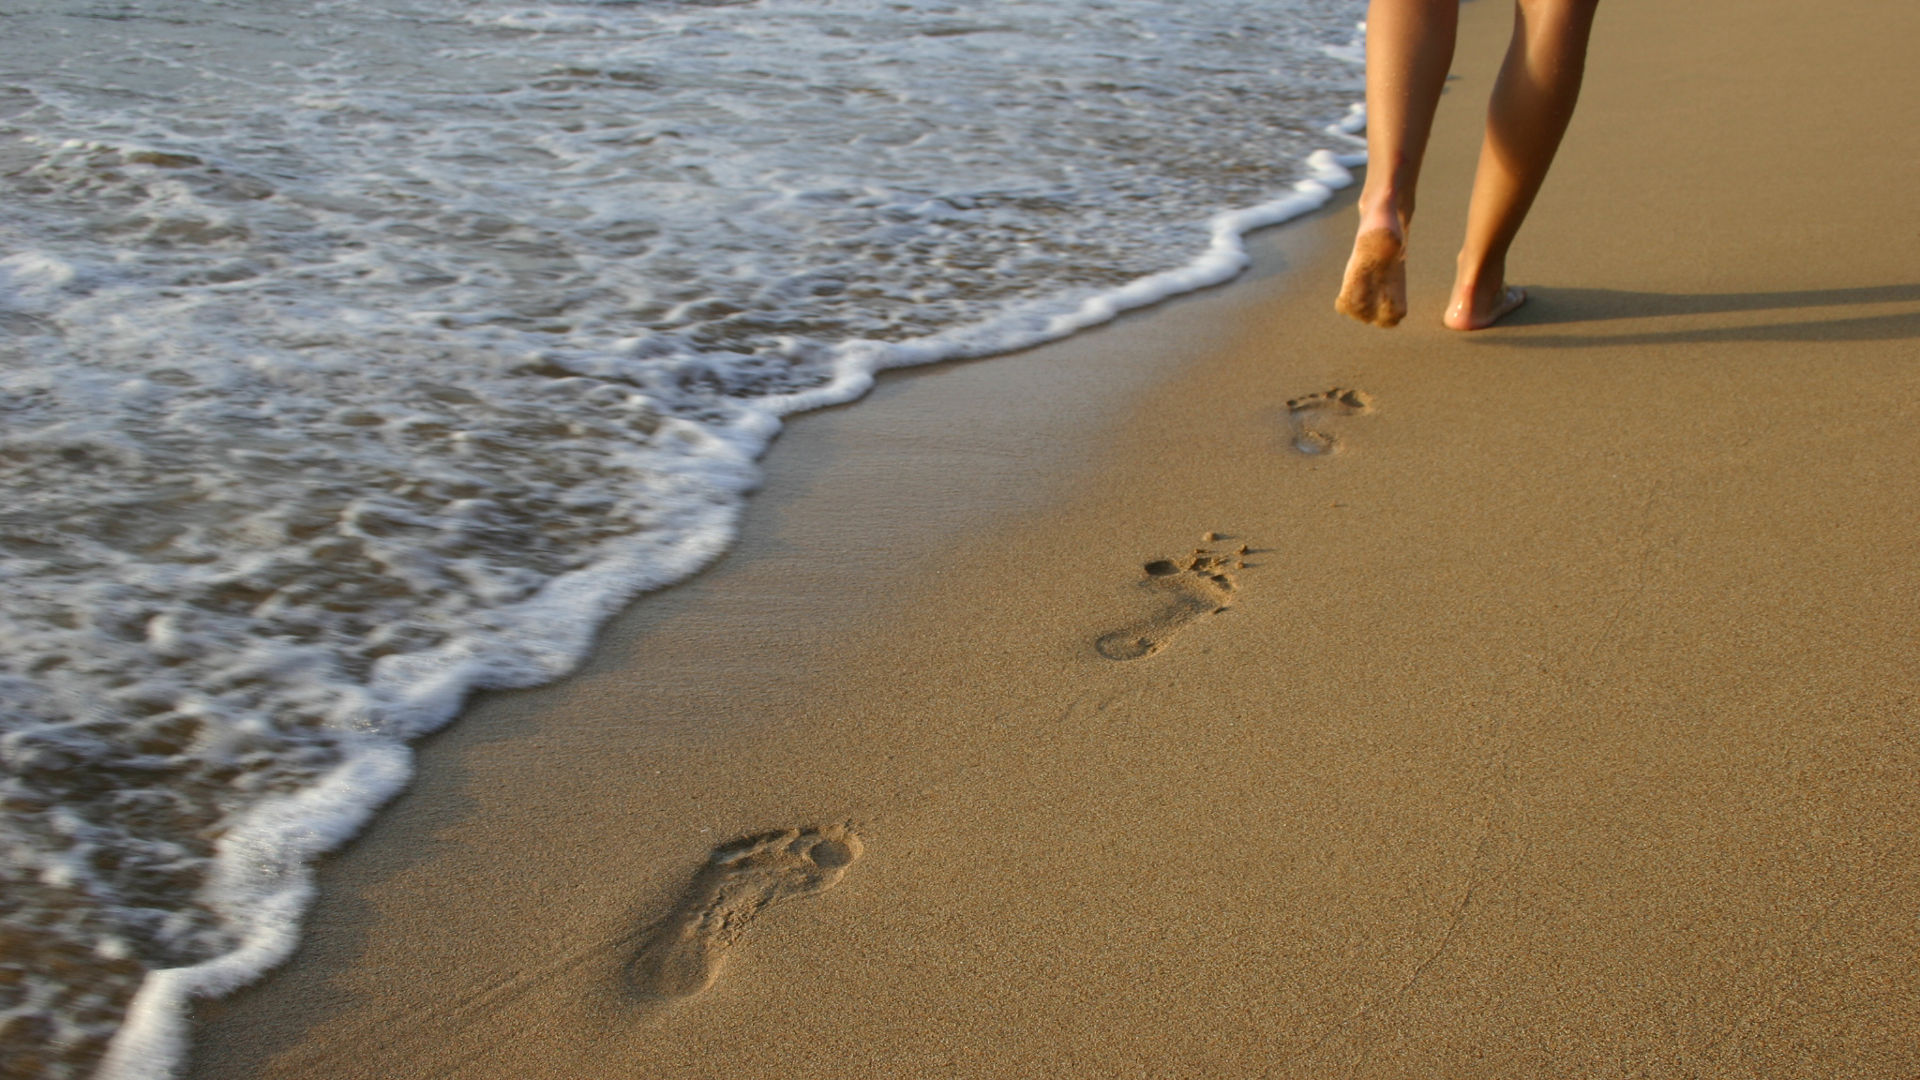 Footprints in the sand. Photo credit: Csongor Varga on Free Images.